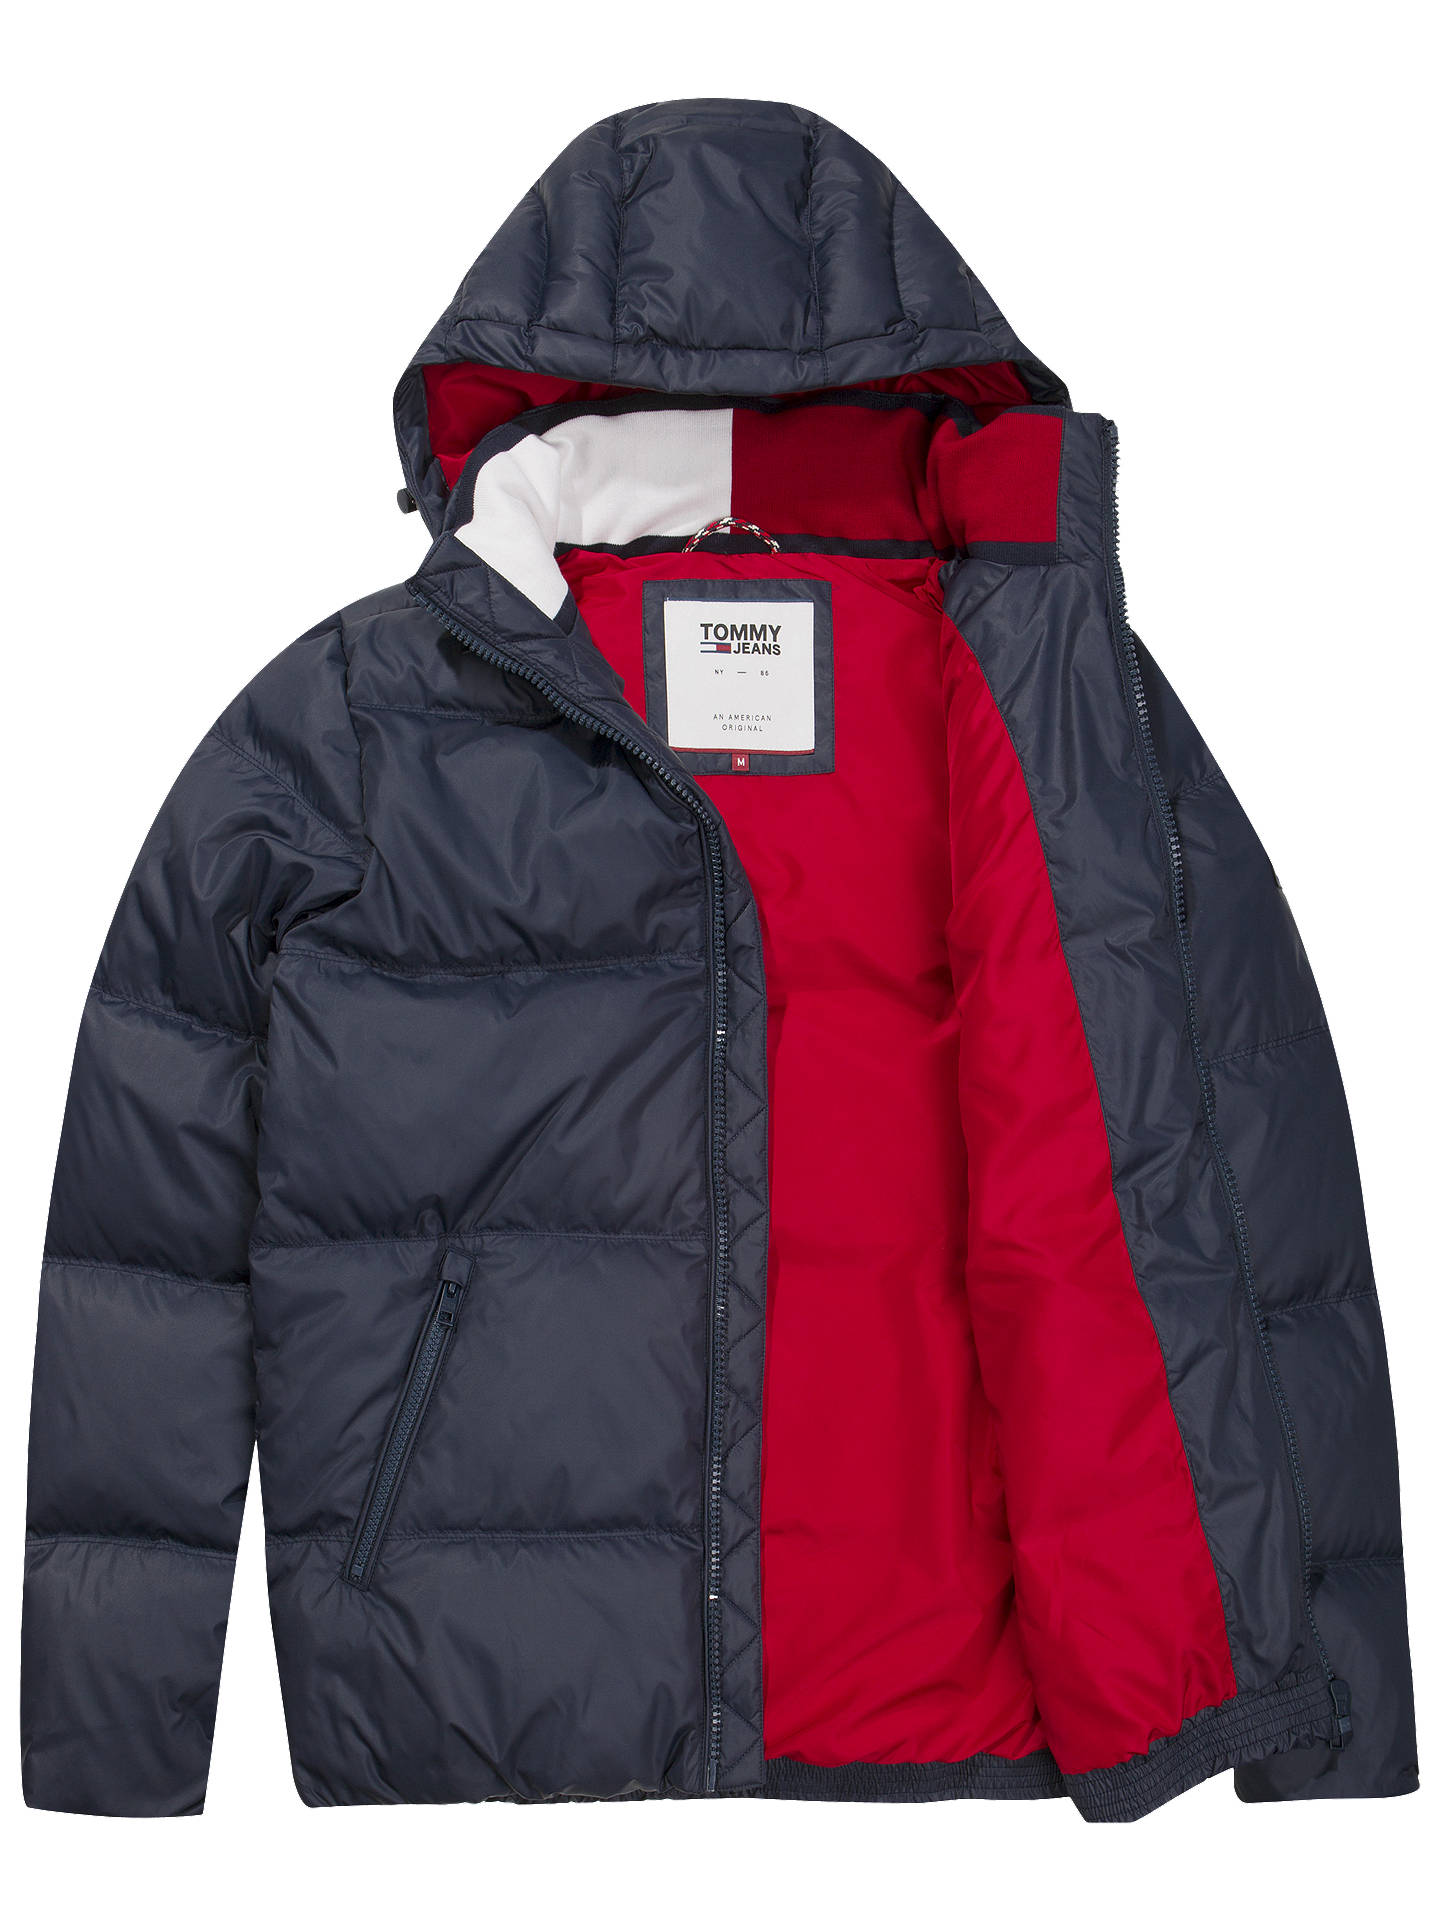 2019 hot sale bright n colour attractive designs Tommy Jeans Essential Down Jacket, Navy at John Lewis & Partners